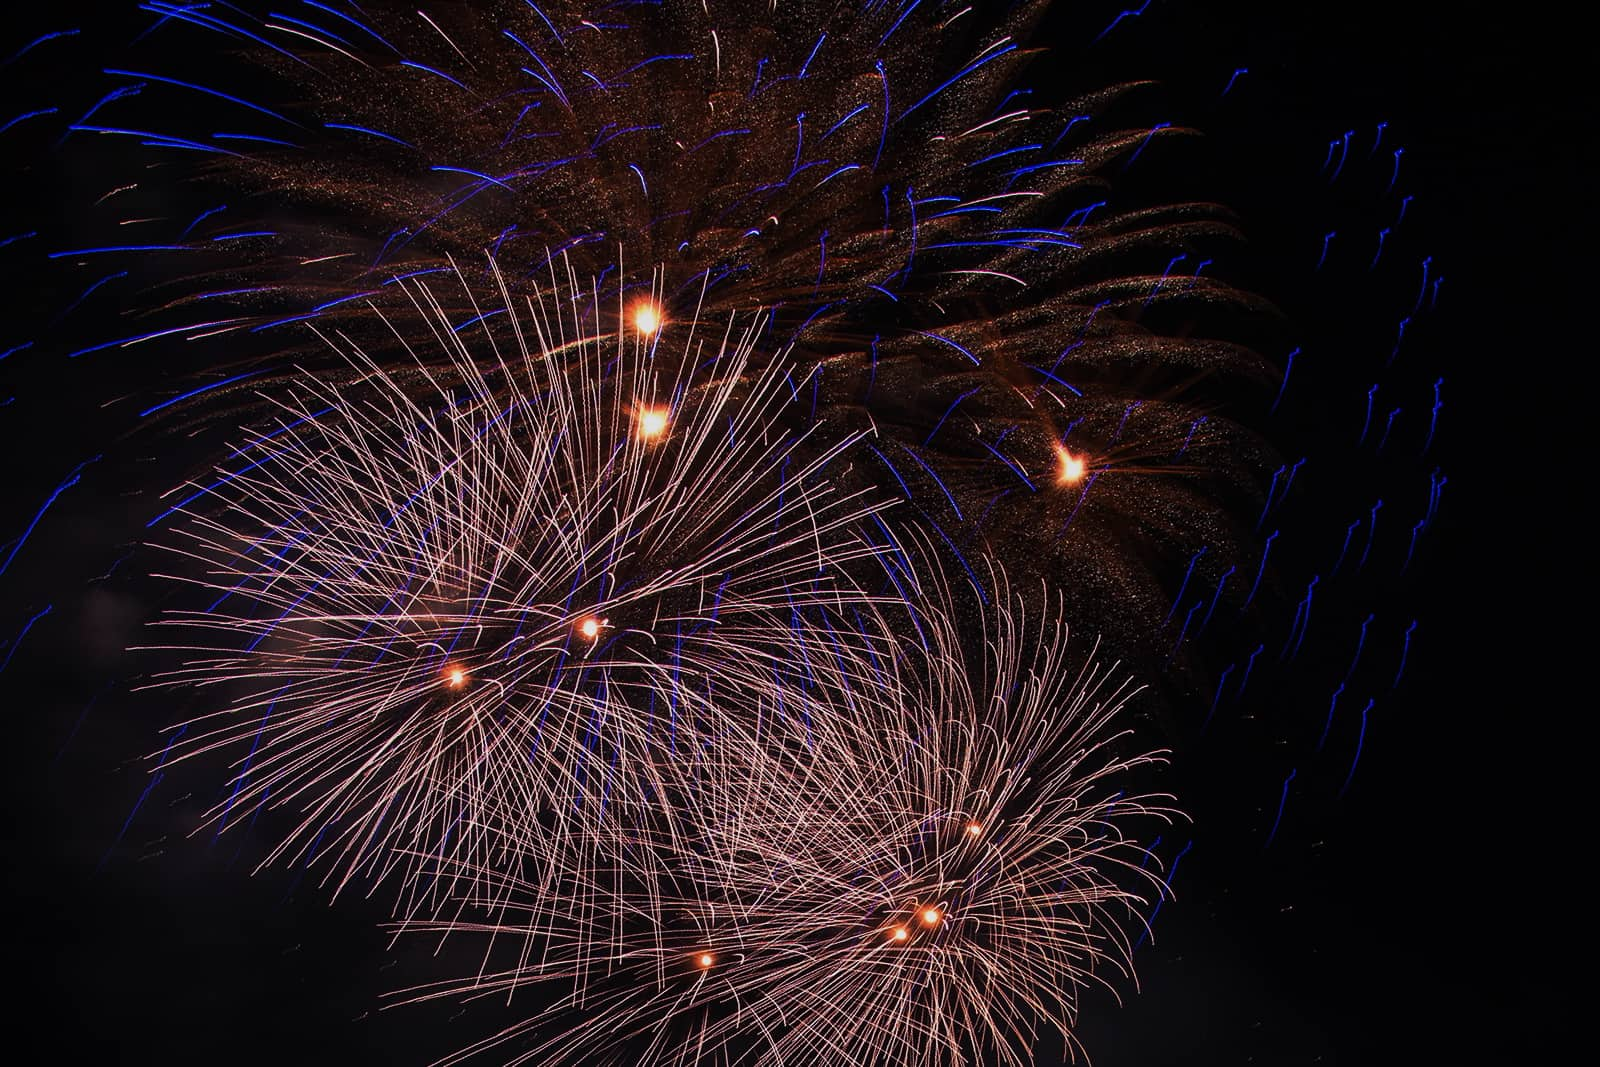 Boston Pops Fireworks Spectacular: July 4th, 2016, Blue and White Fireworks